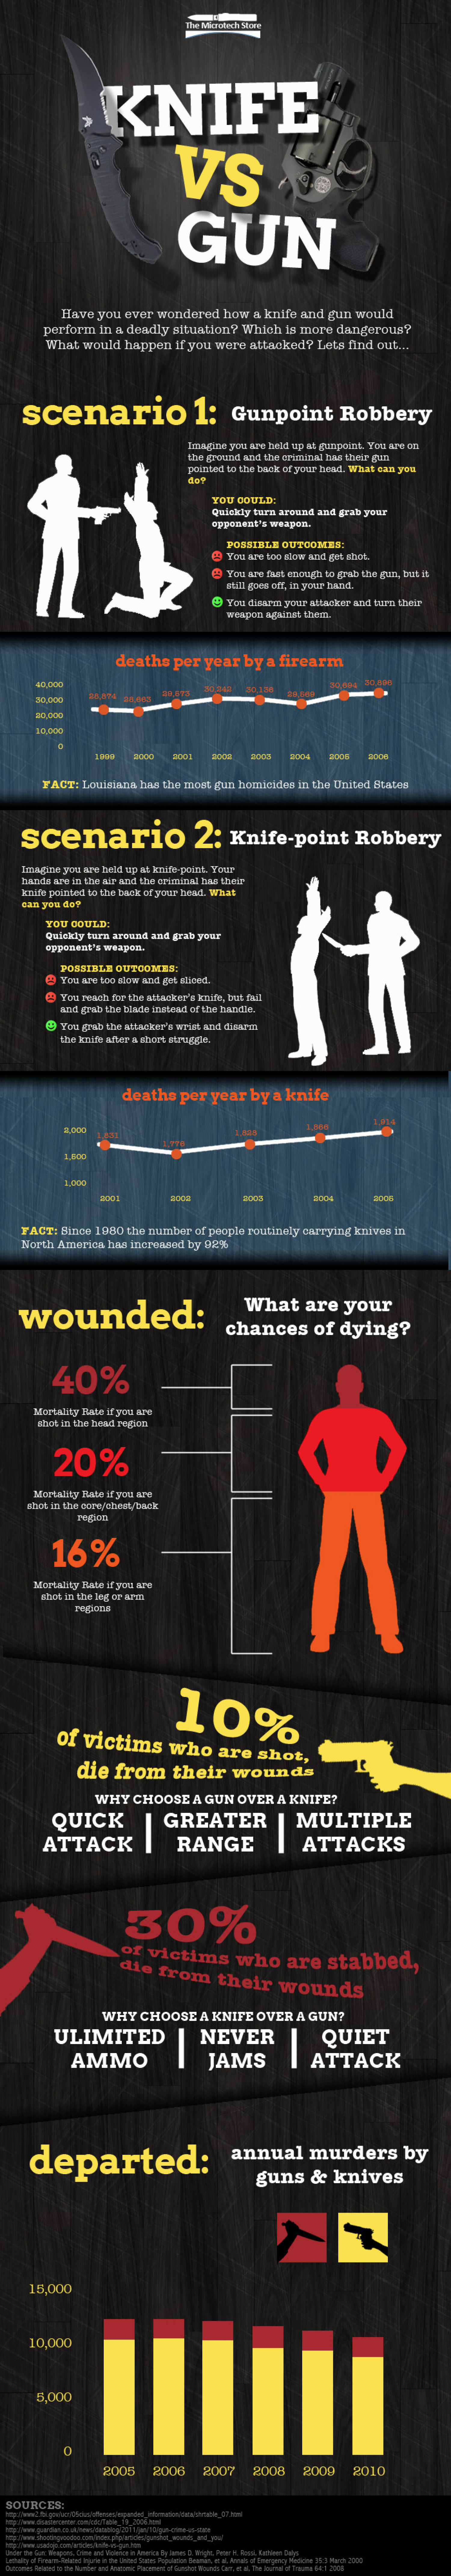 Knife VS Gun Infographic